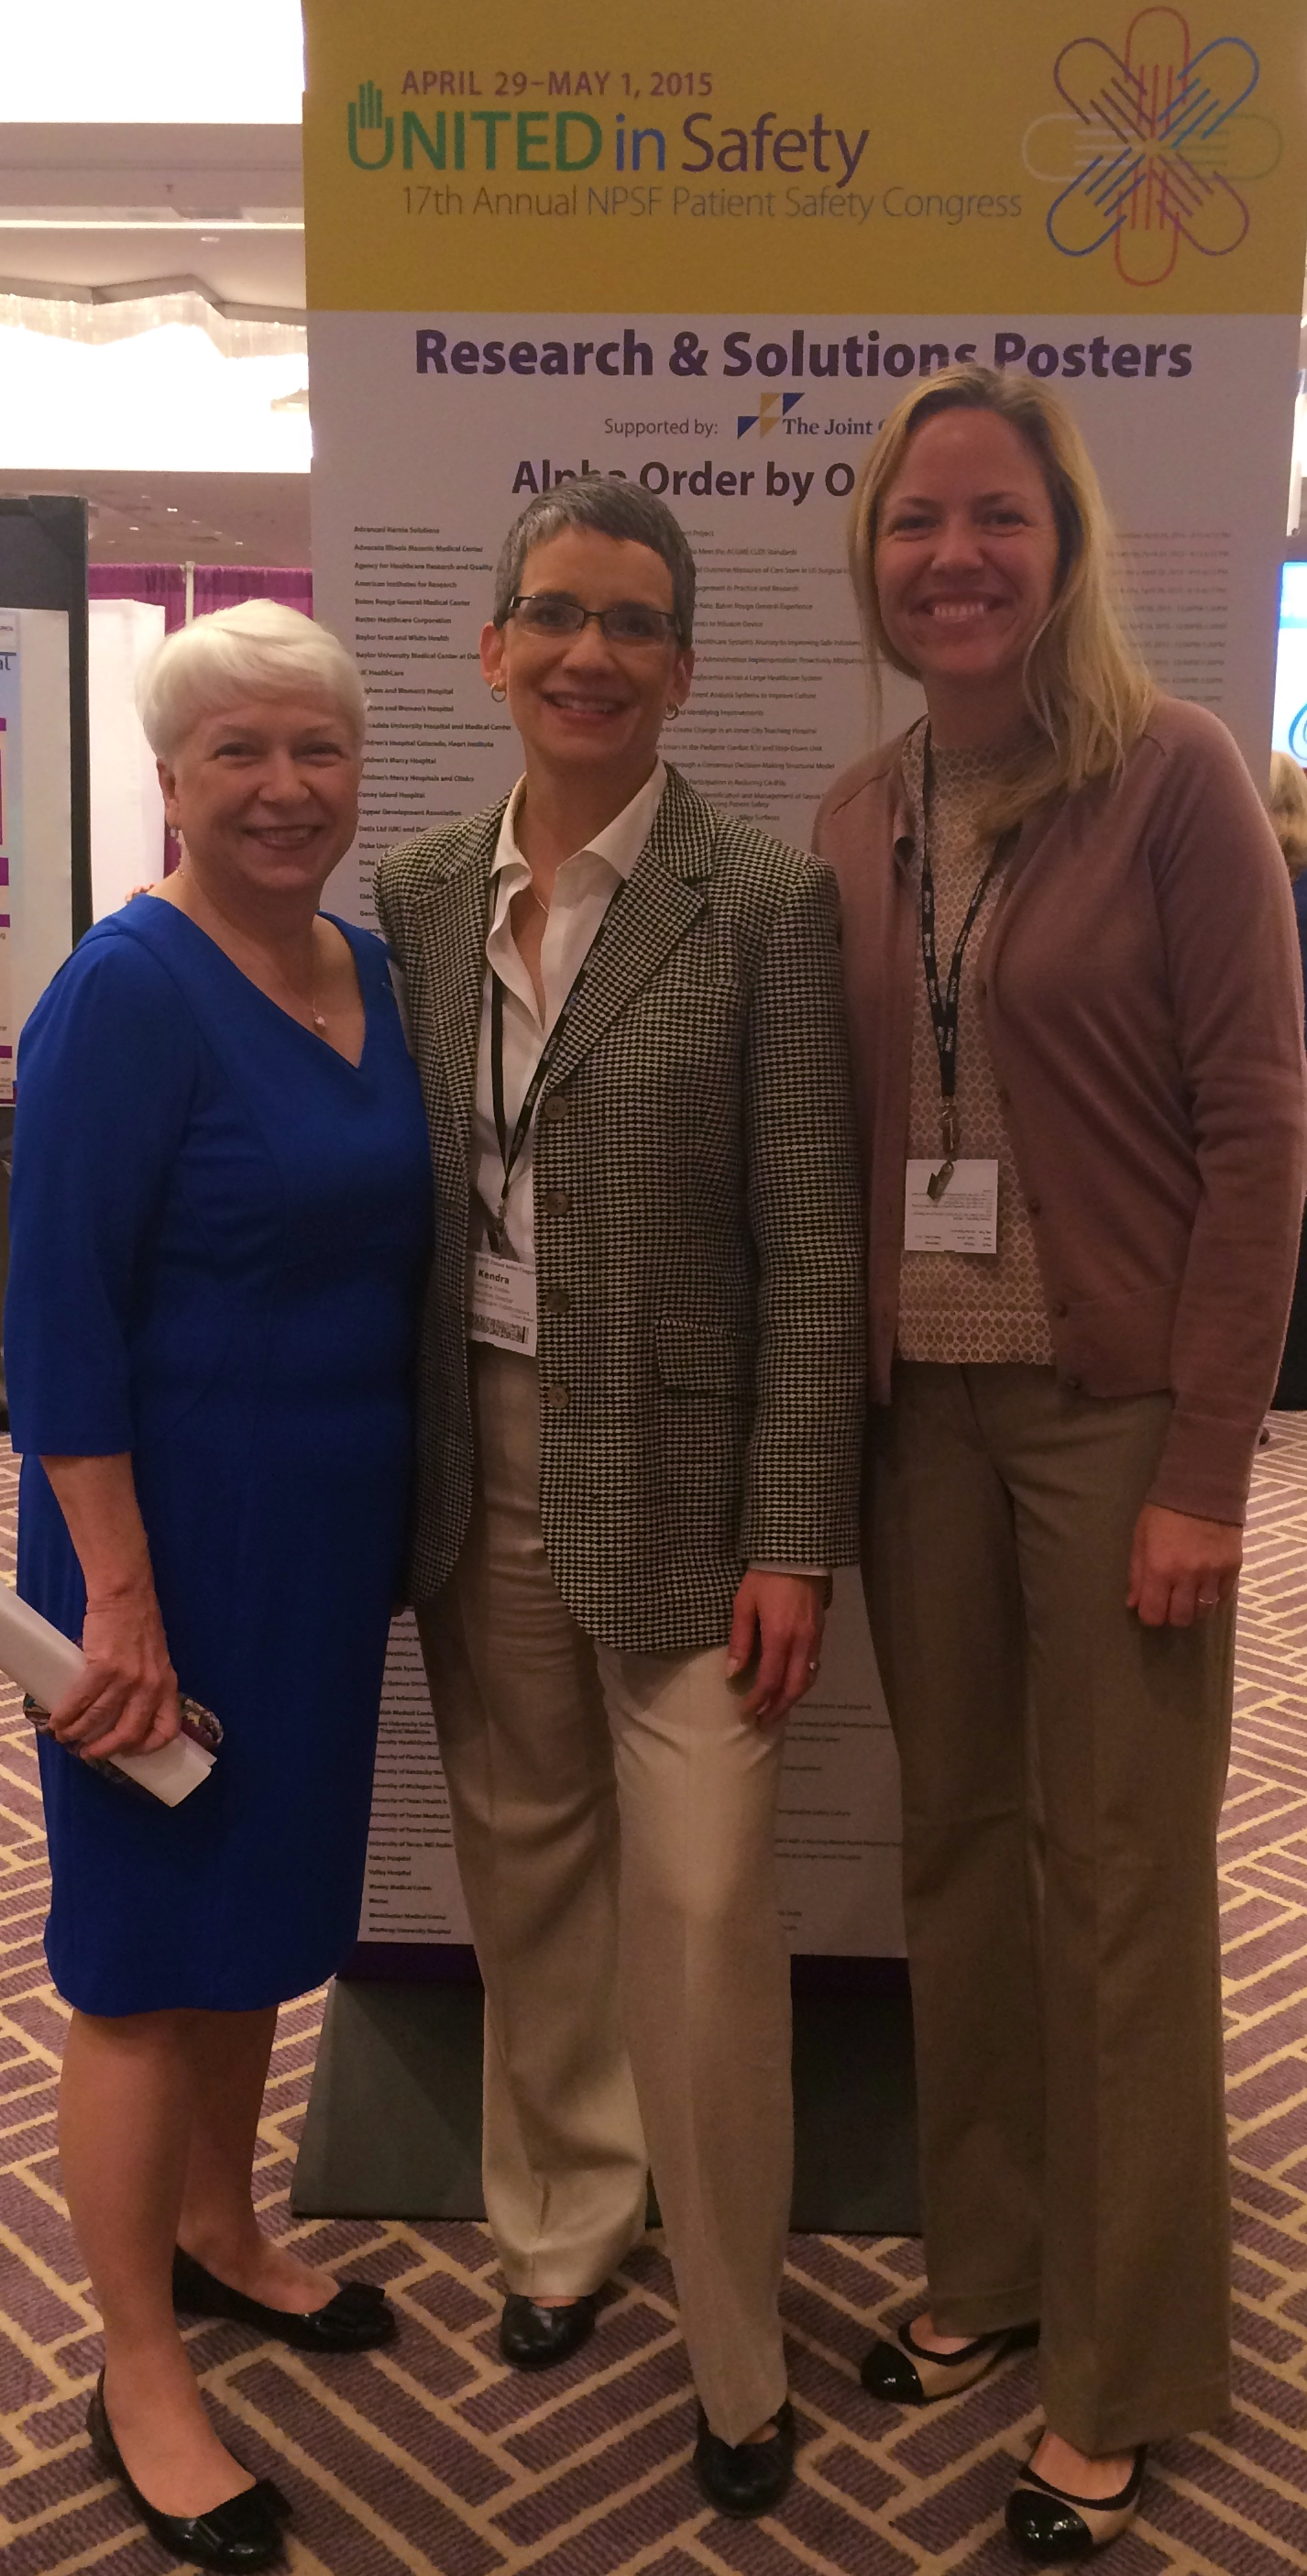 From left: Joann Paul, Wesley Medical Center; Kendra Tinsley, Kansas Healthcare Collaborative; and Dr. Jennifer Scott Koontz, Newton Medical Center, present their patient safety projects during the poster session at NPSF Patient Safety Congress in Austin, Tex.